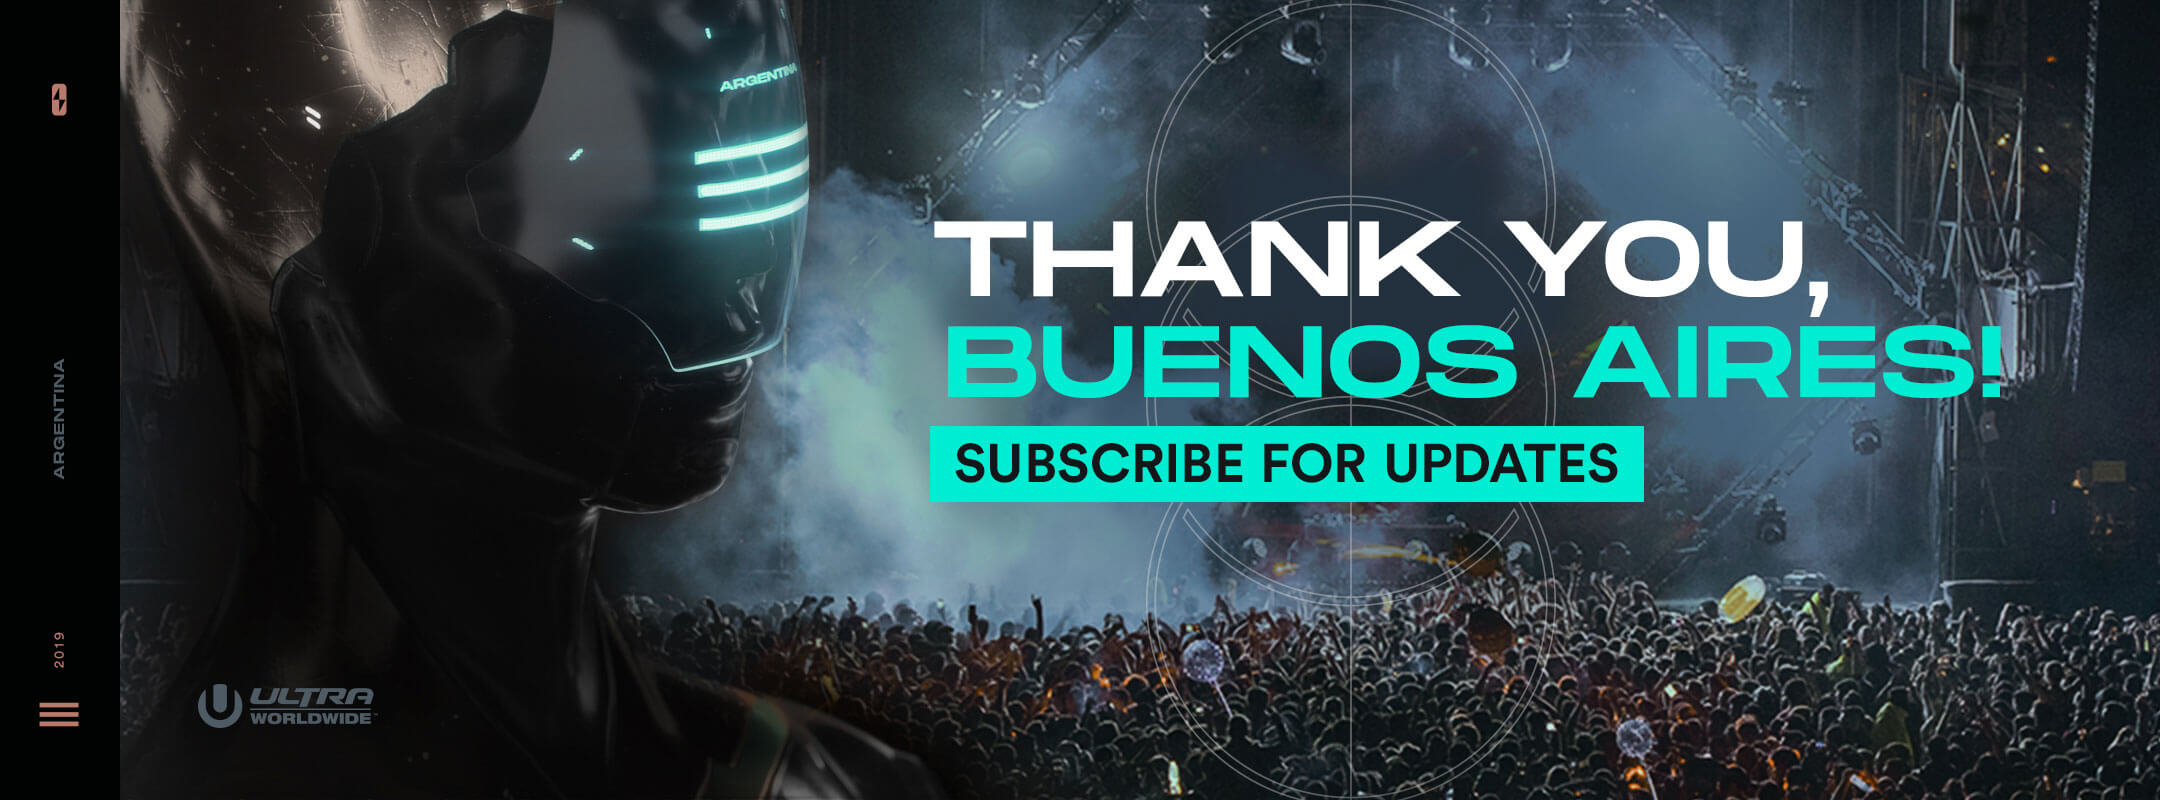 Subscribe for Updates to RESISTANCE Buenos Aires